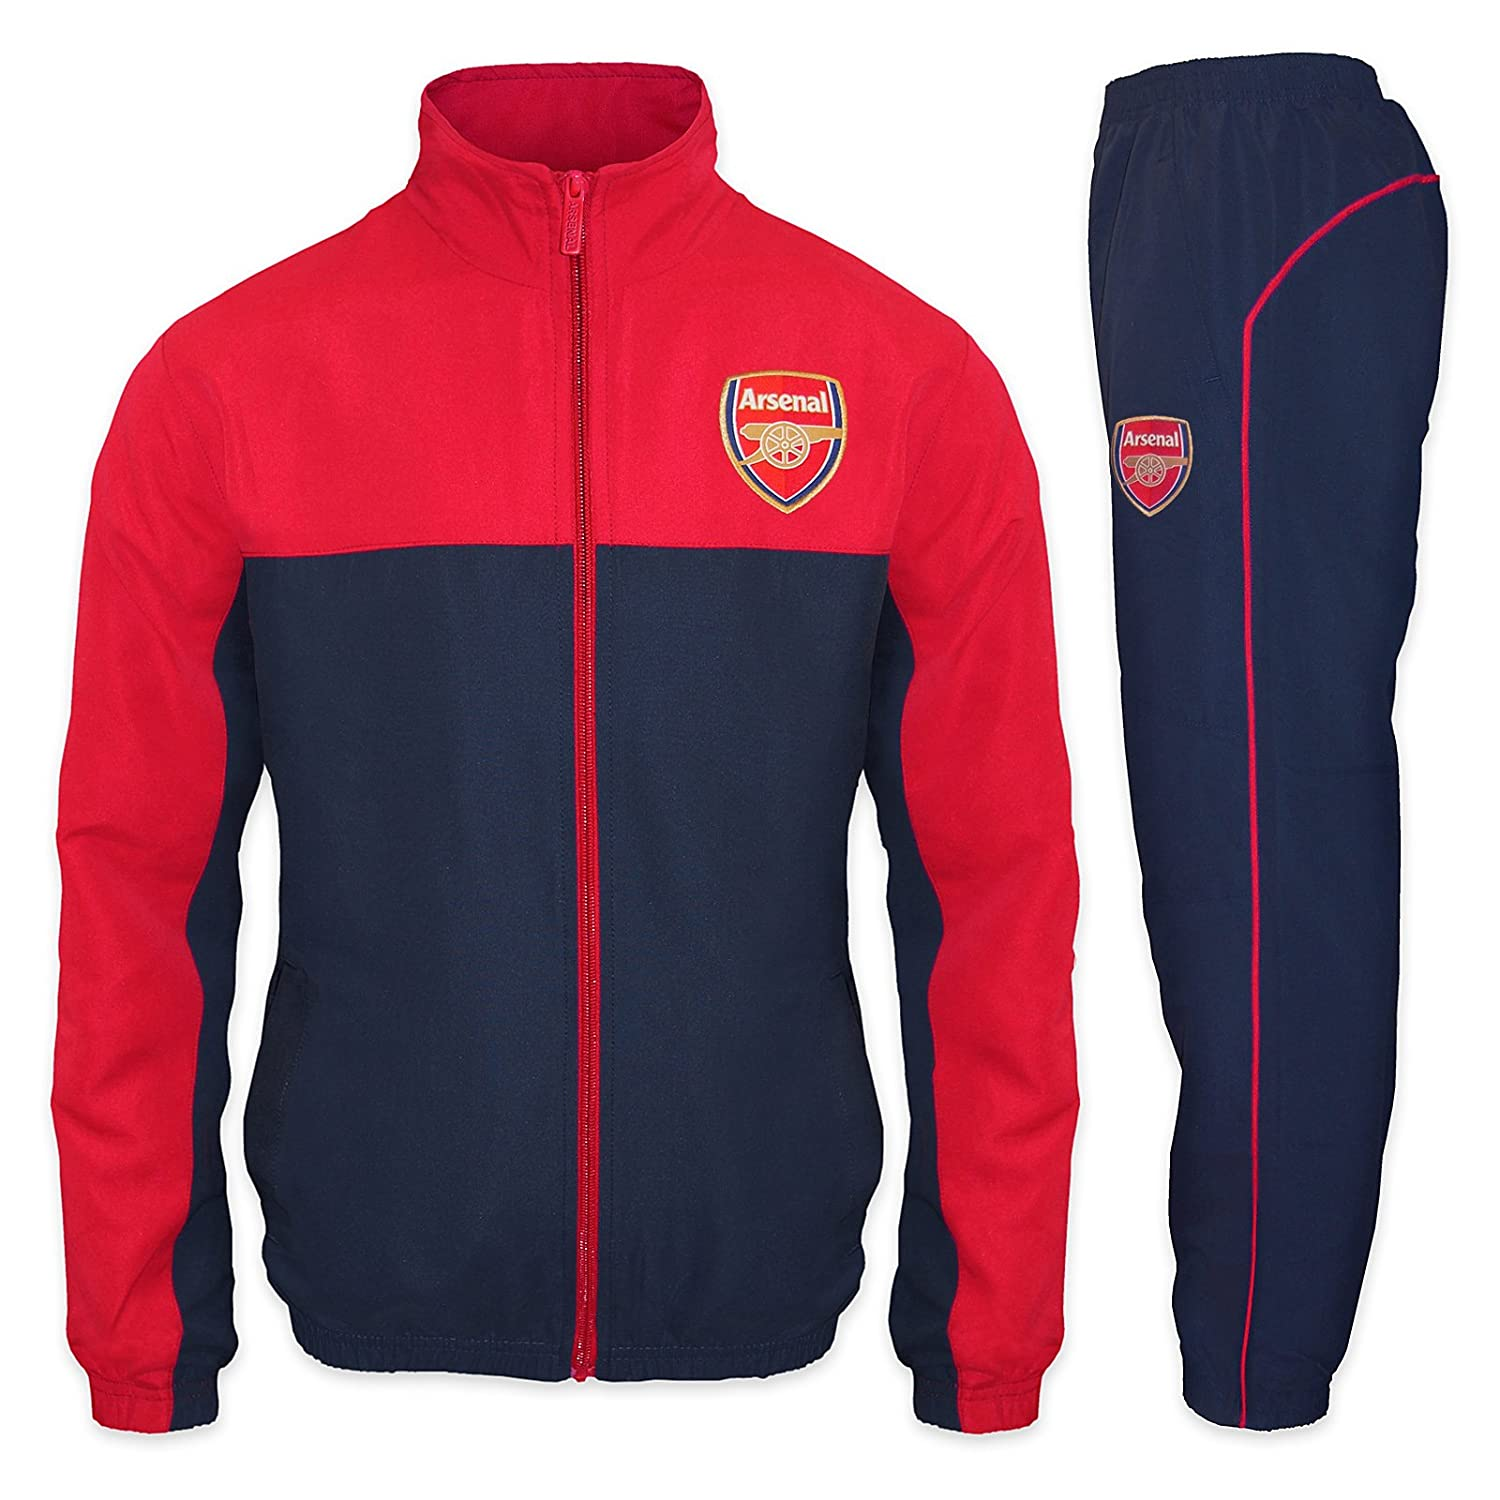 Arsenal Football Club Official Soccer Gift Mens Jacket & Pants Tracksuit Set